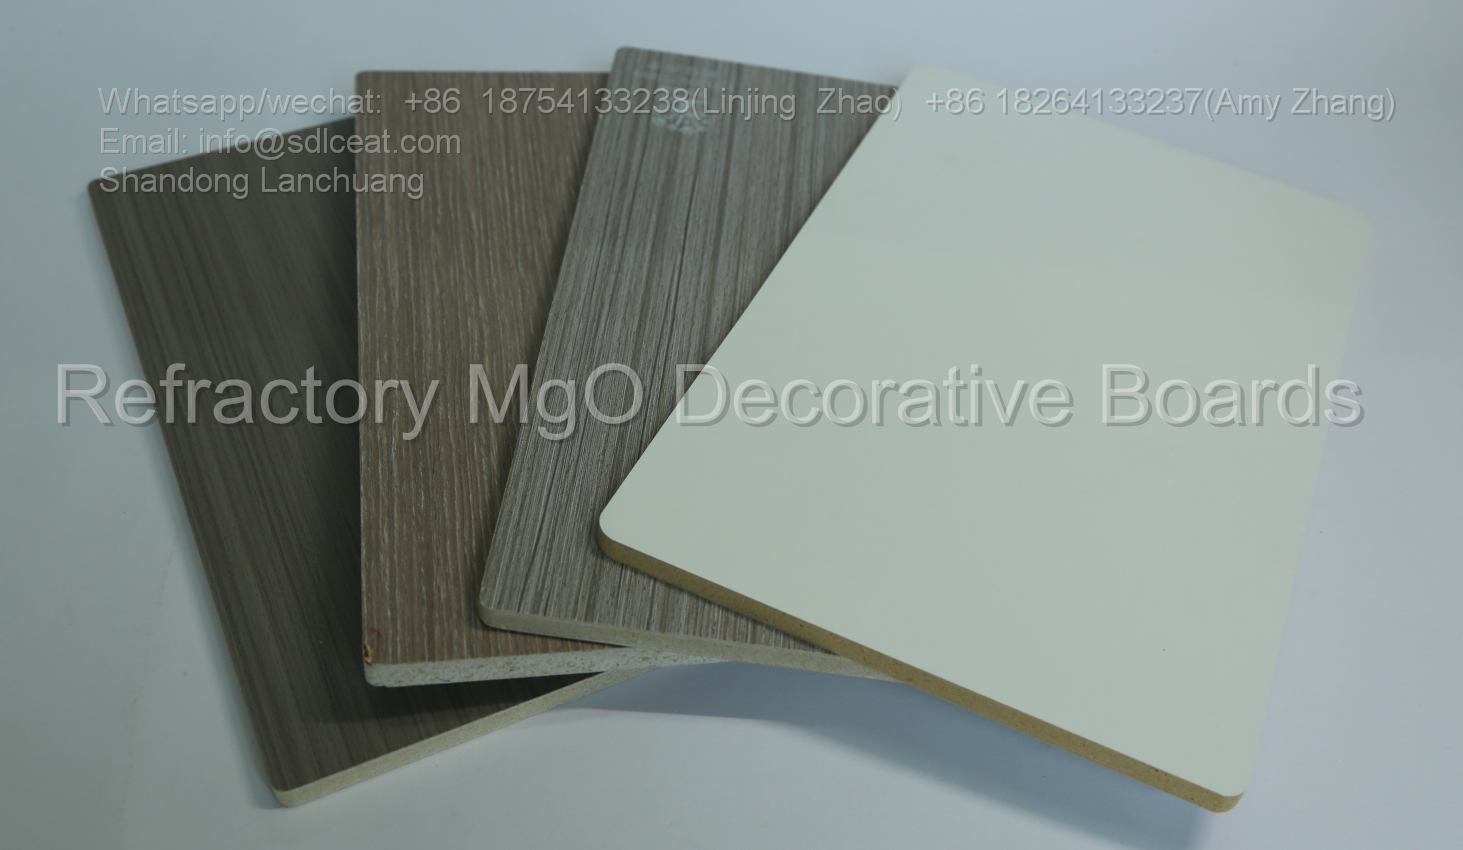 mgo sandwich decorative board